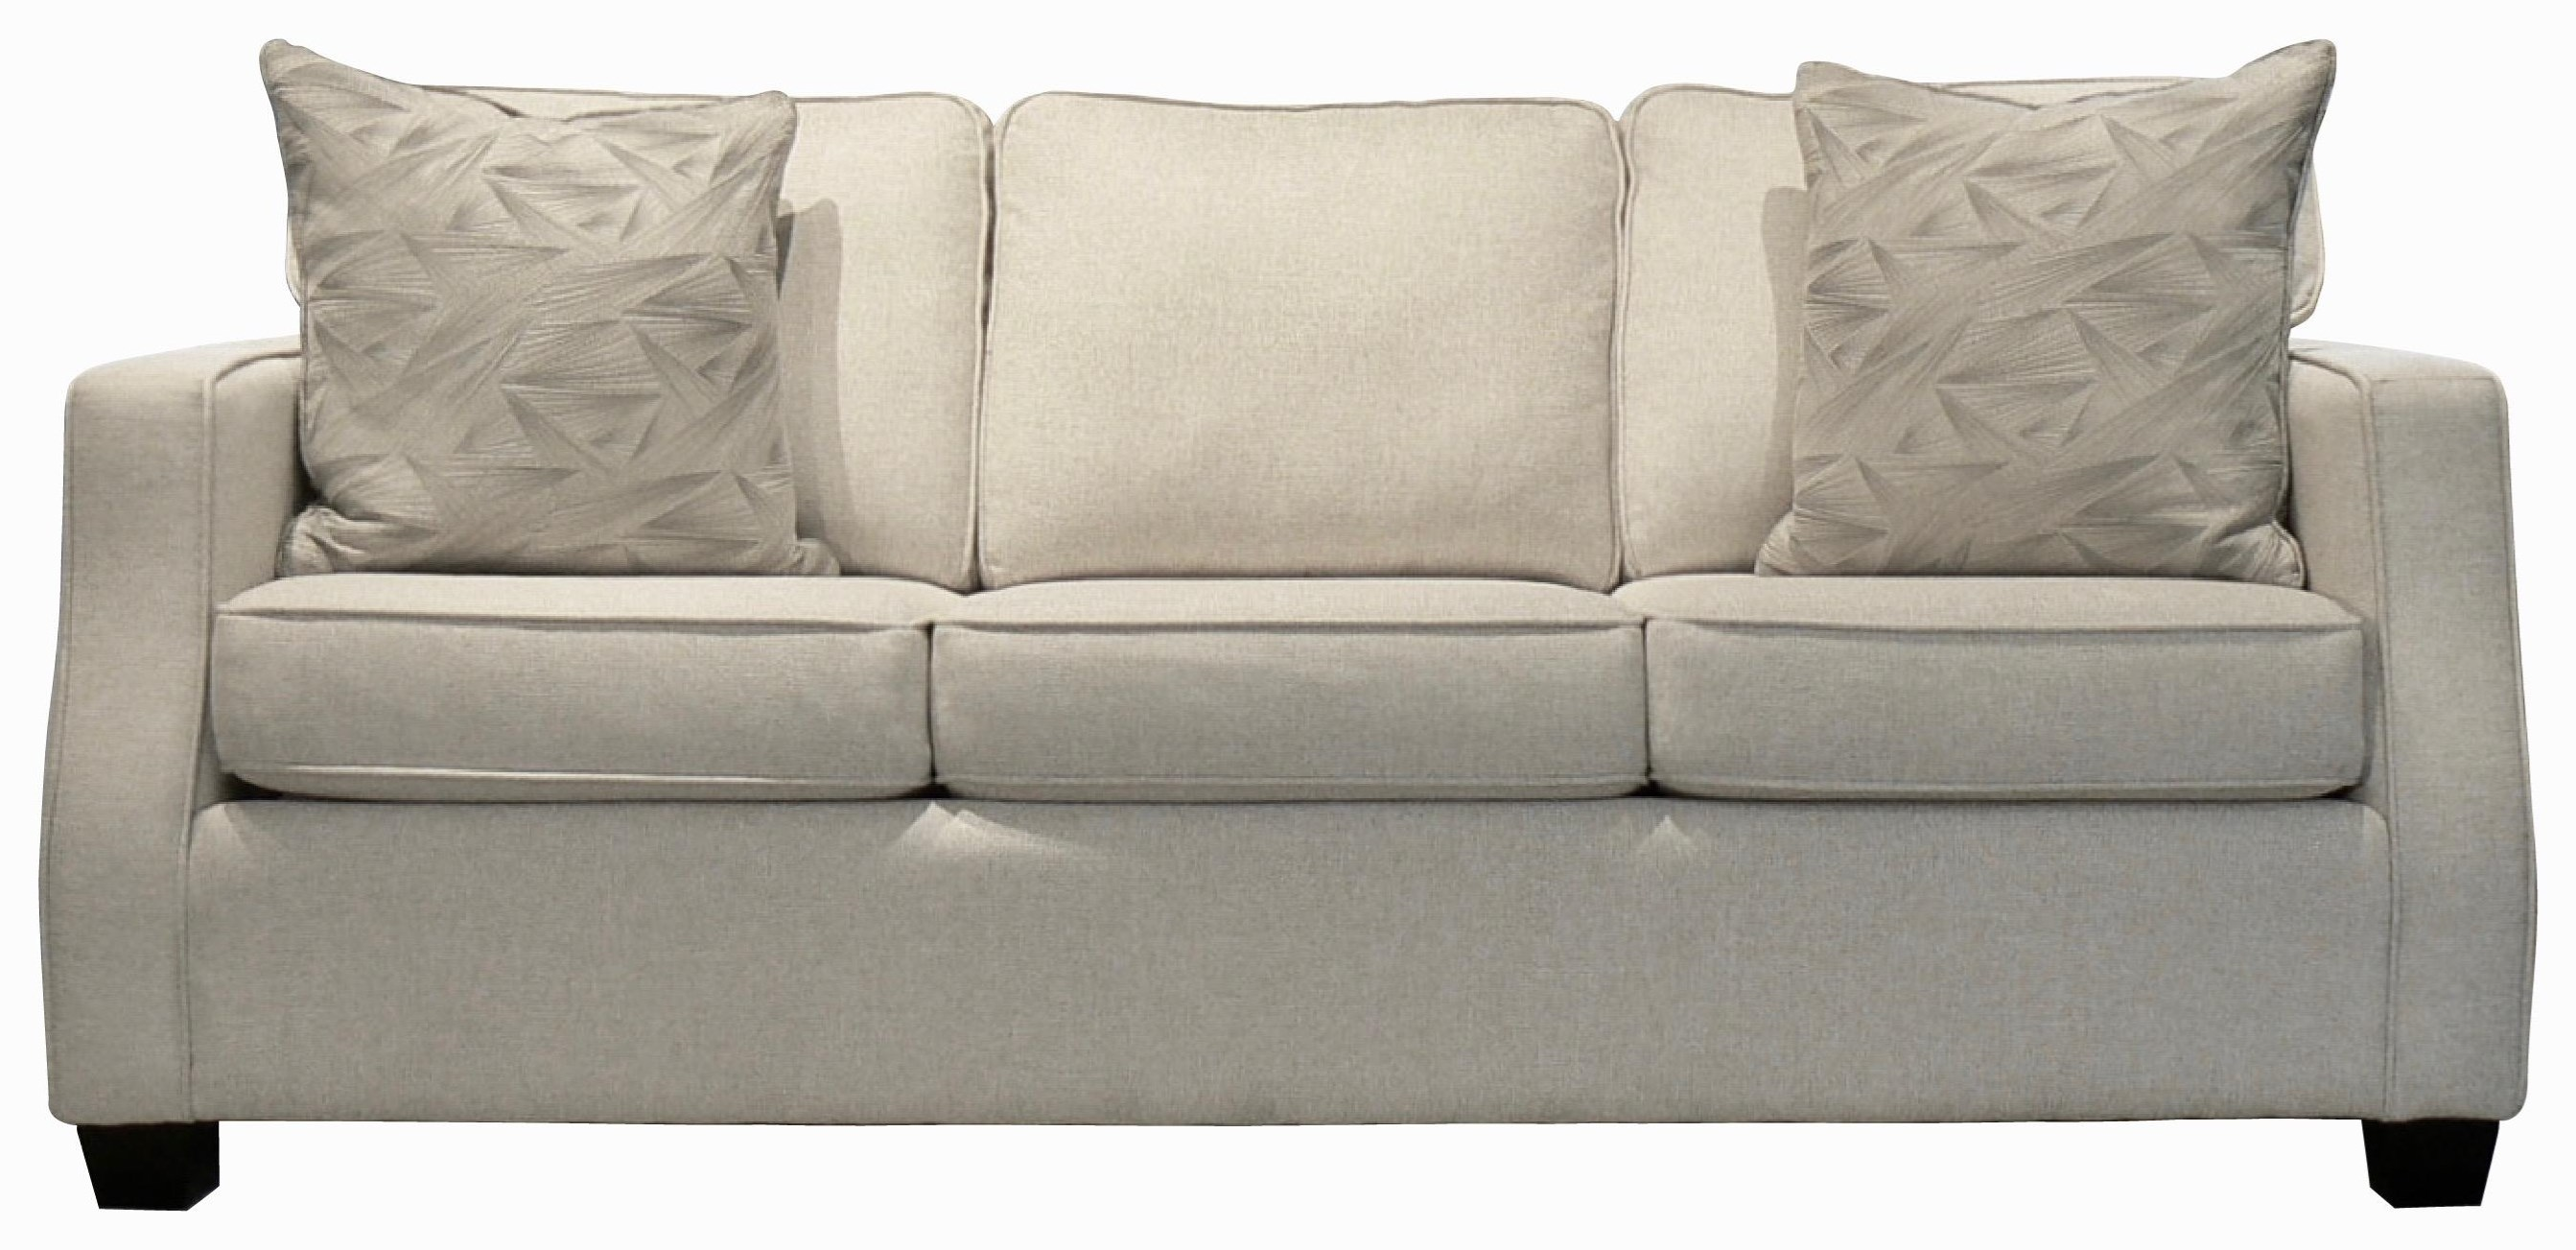 Rio Sofa by Taelor Designs at Bennett's Furniture and Mattresses